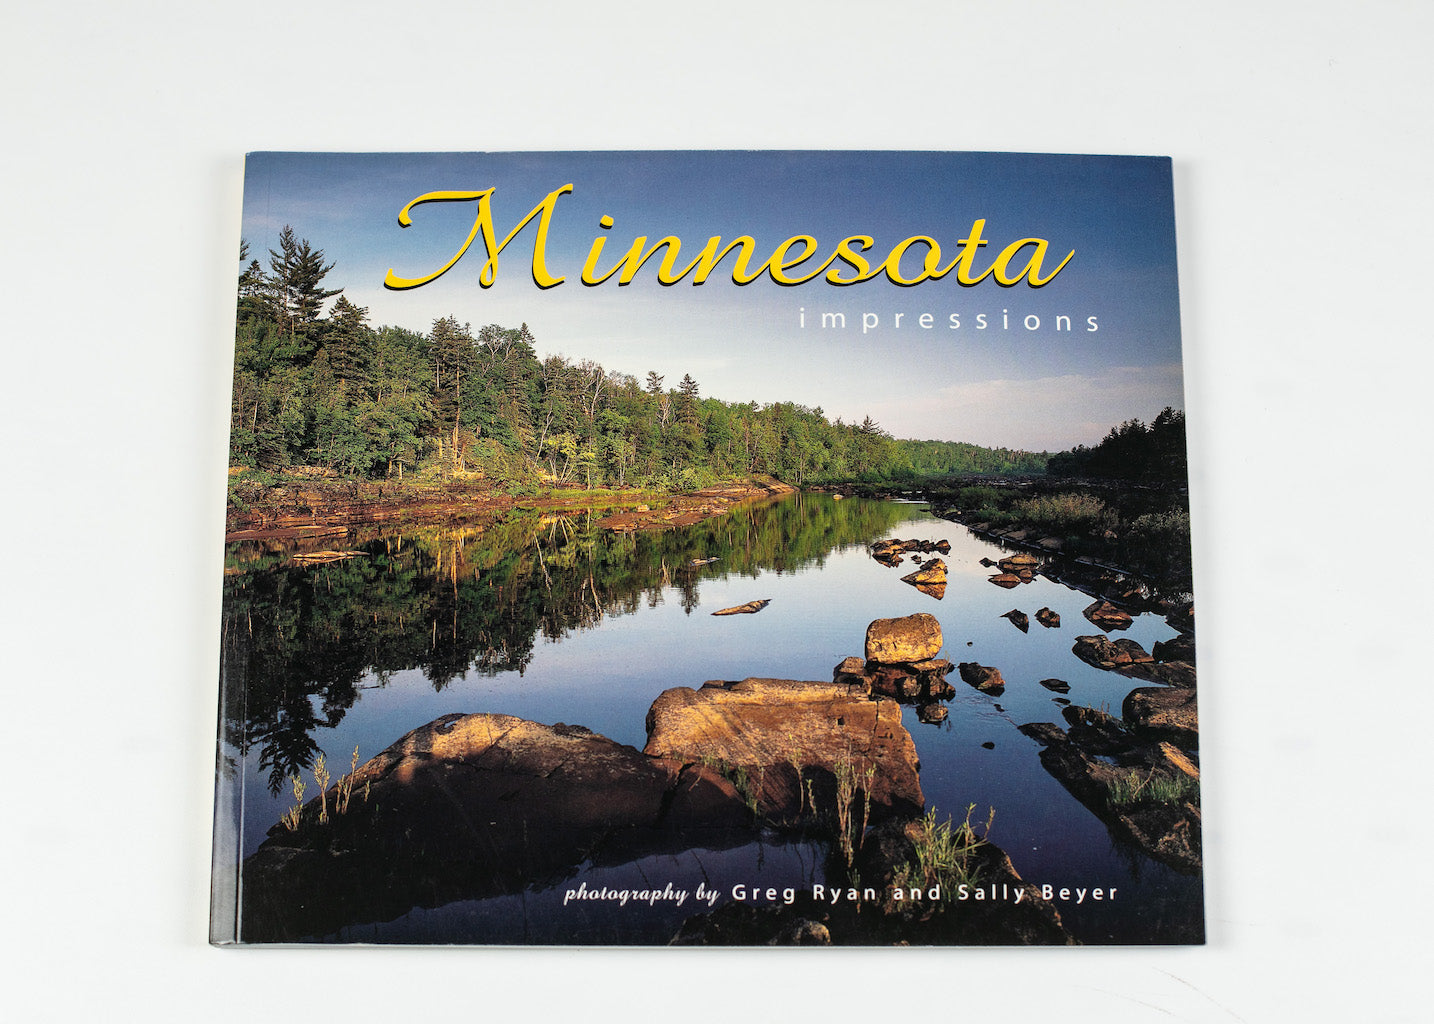 "MINNESOTA IMPRESSIONS BY GREY RYAN AND SALLY BEYER 8.0"" X 9.0"" 80 PAGES"